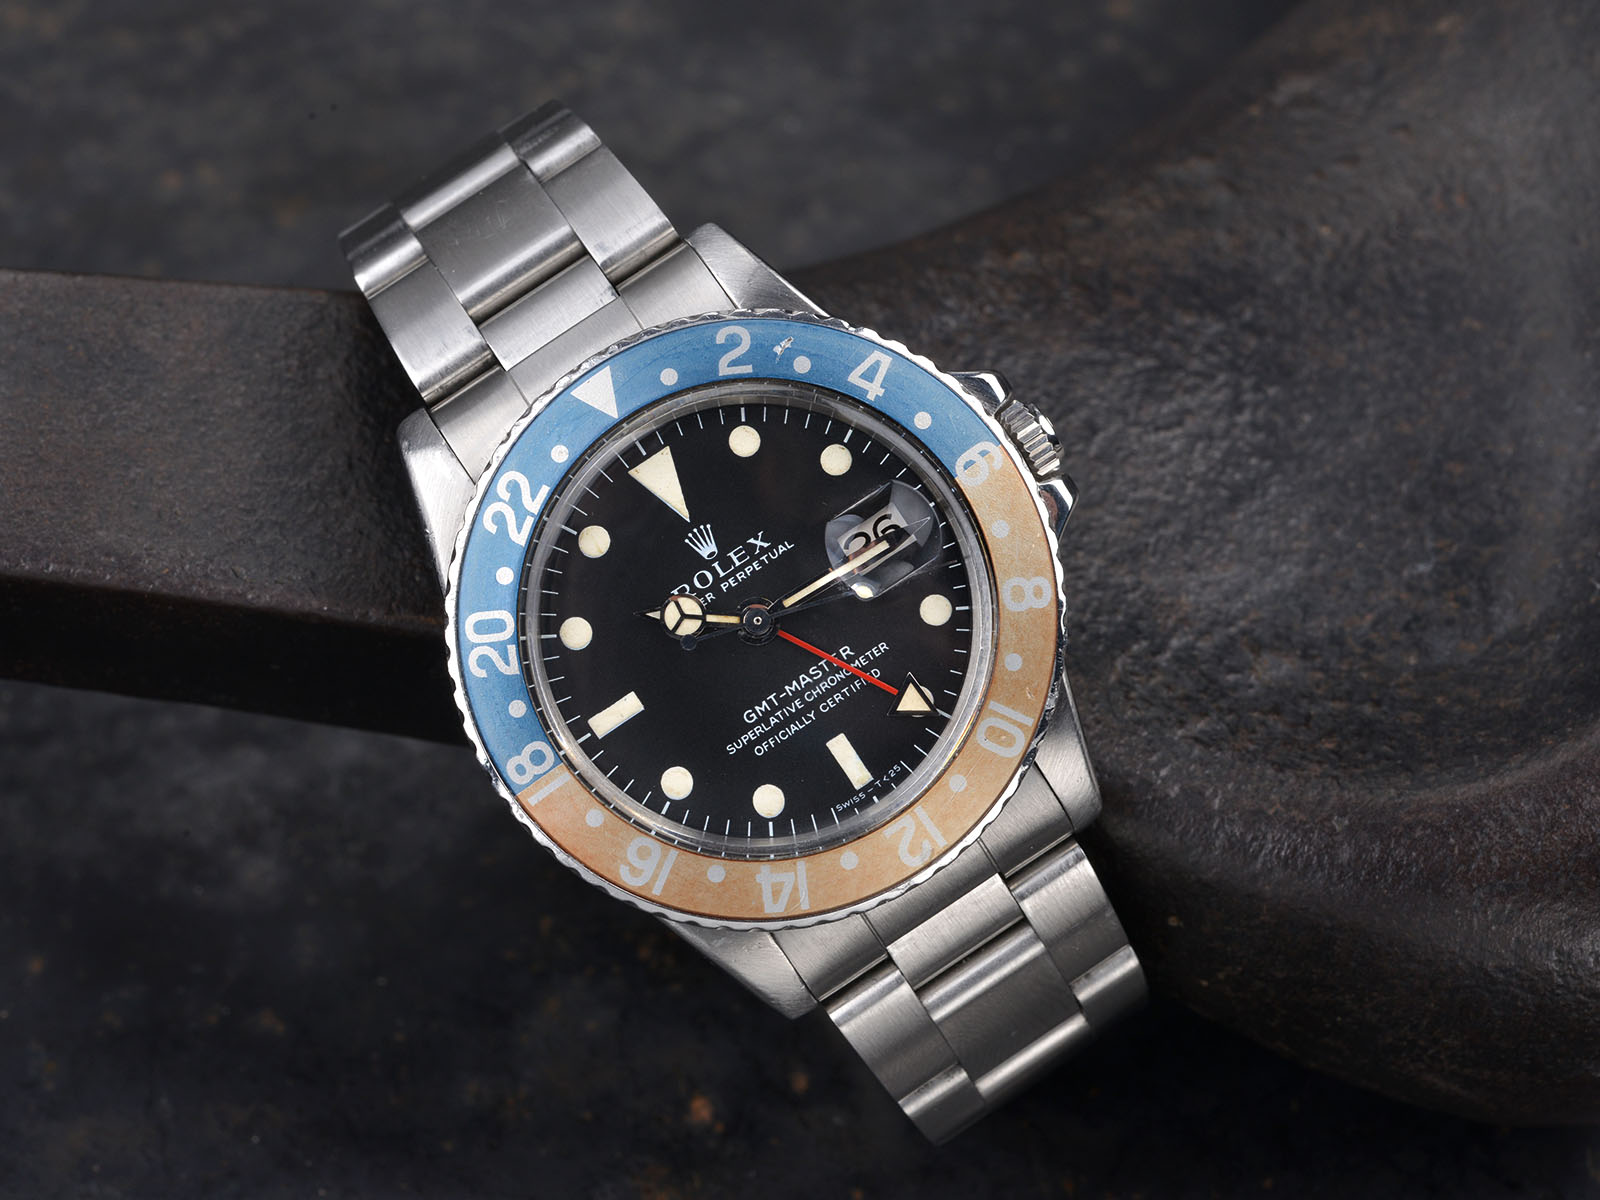 Fedex Box Prices >> ROLEX 1675 GMT 1971 MK1 LONG E - Bulang and Sons